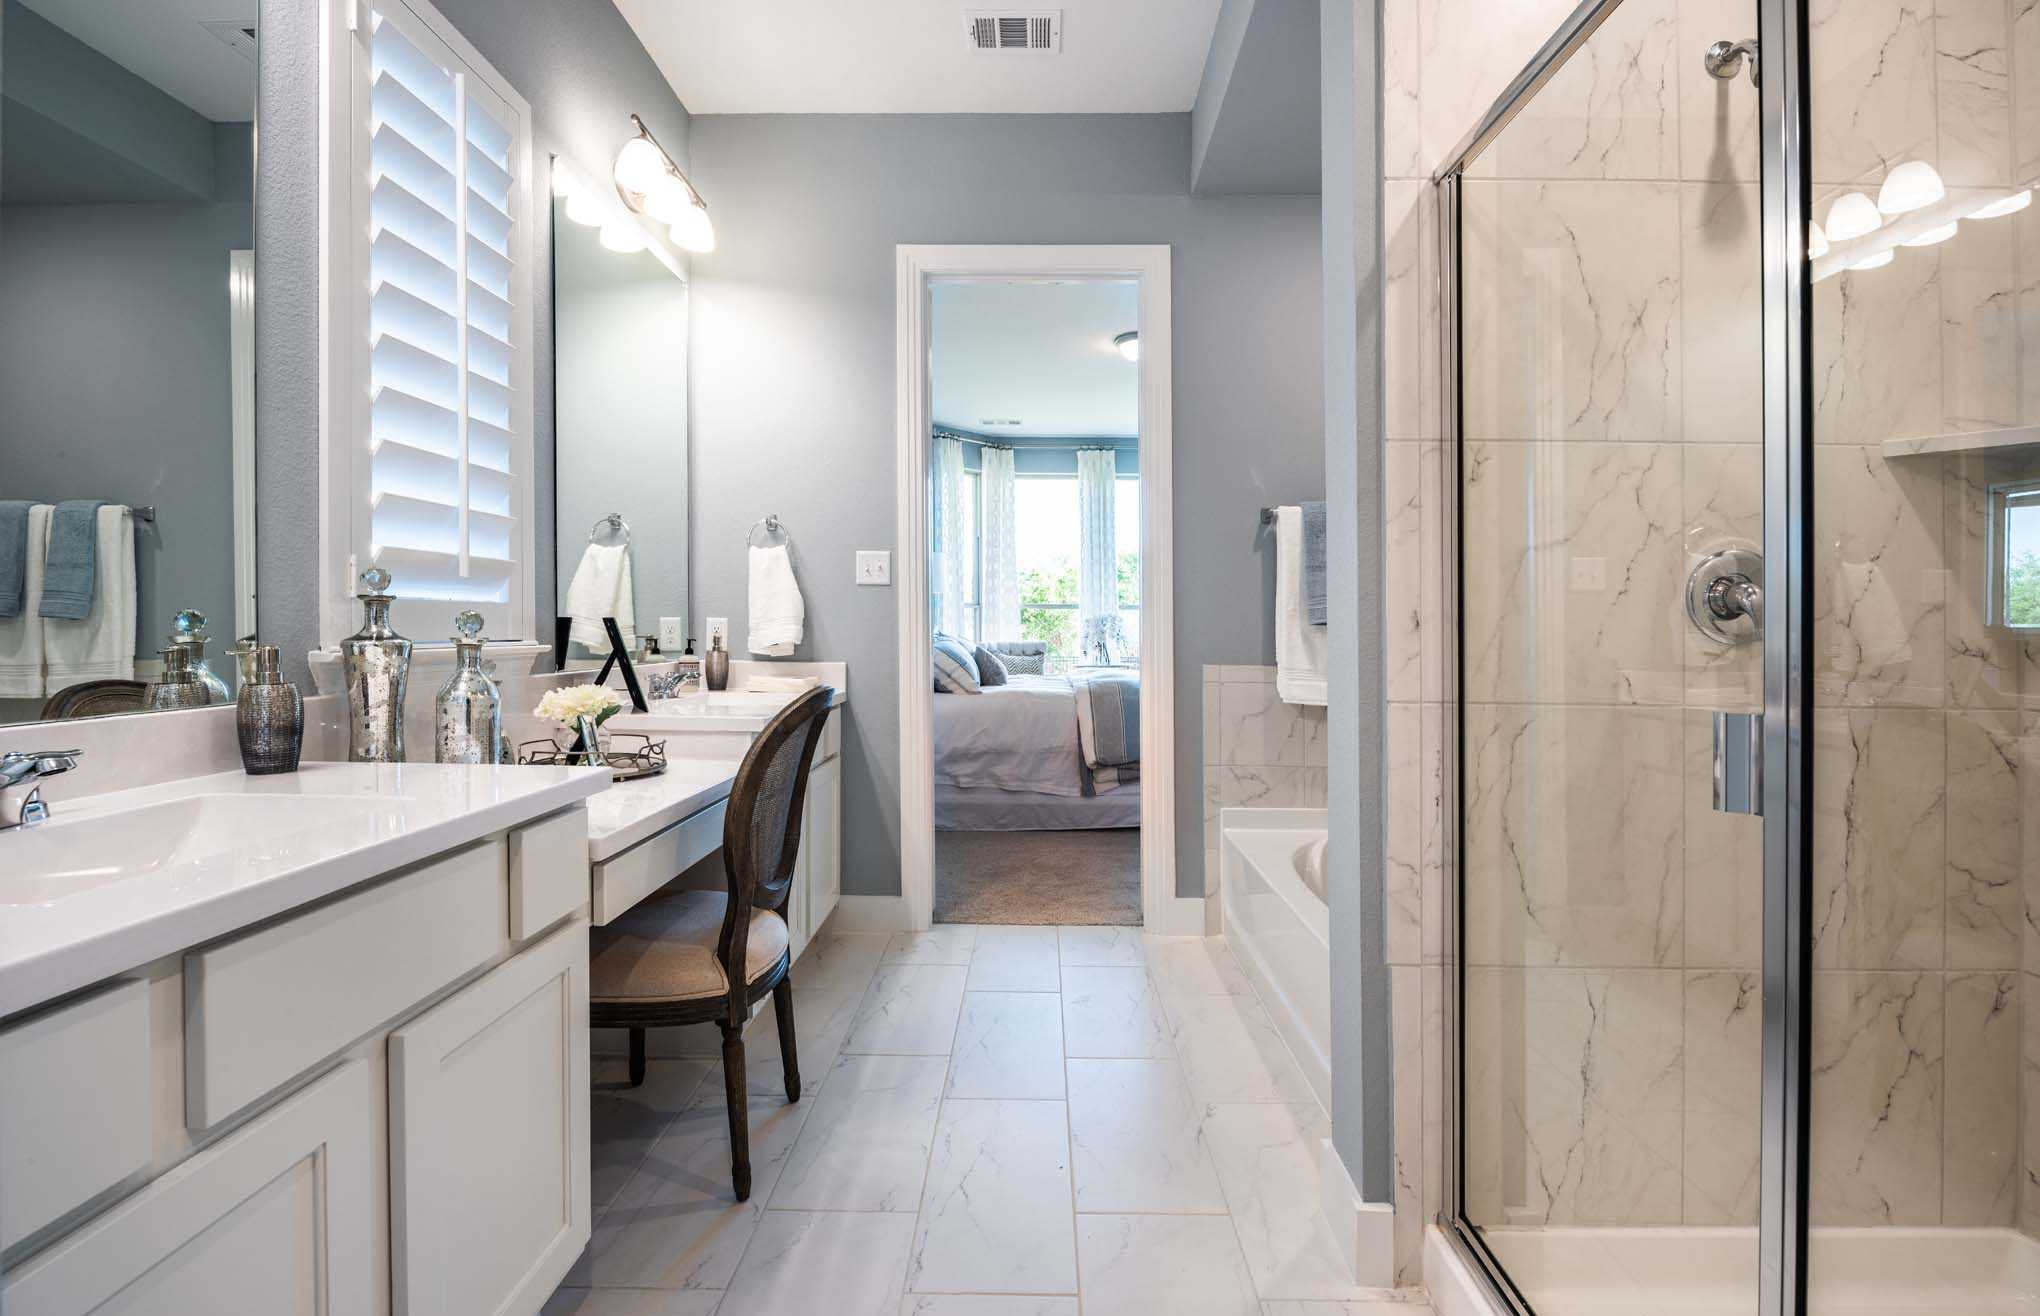 Bathroom featured in the Plan Waverley By Highland Homes in Houston, TX